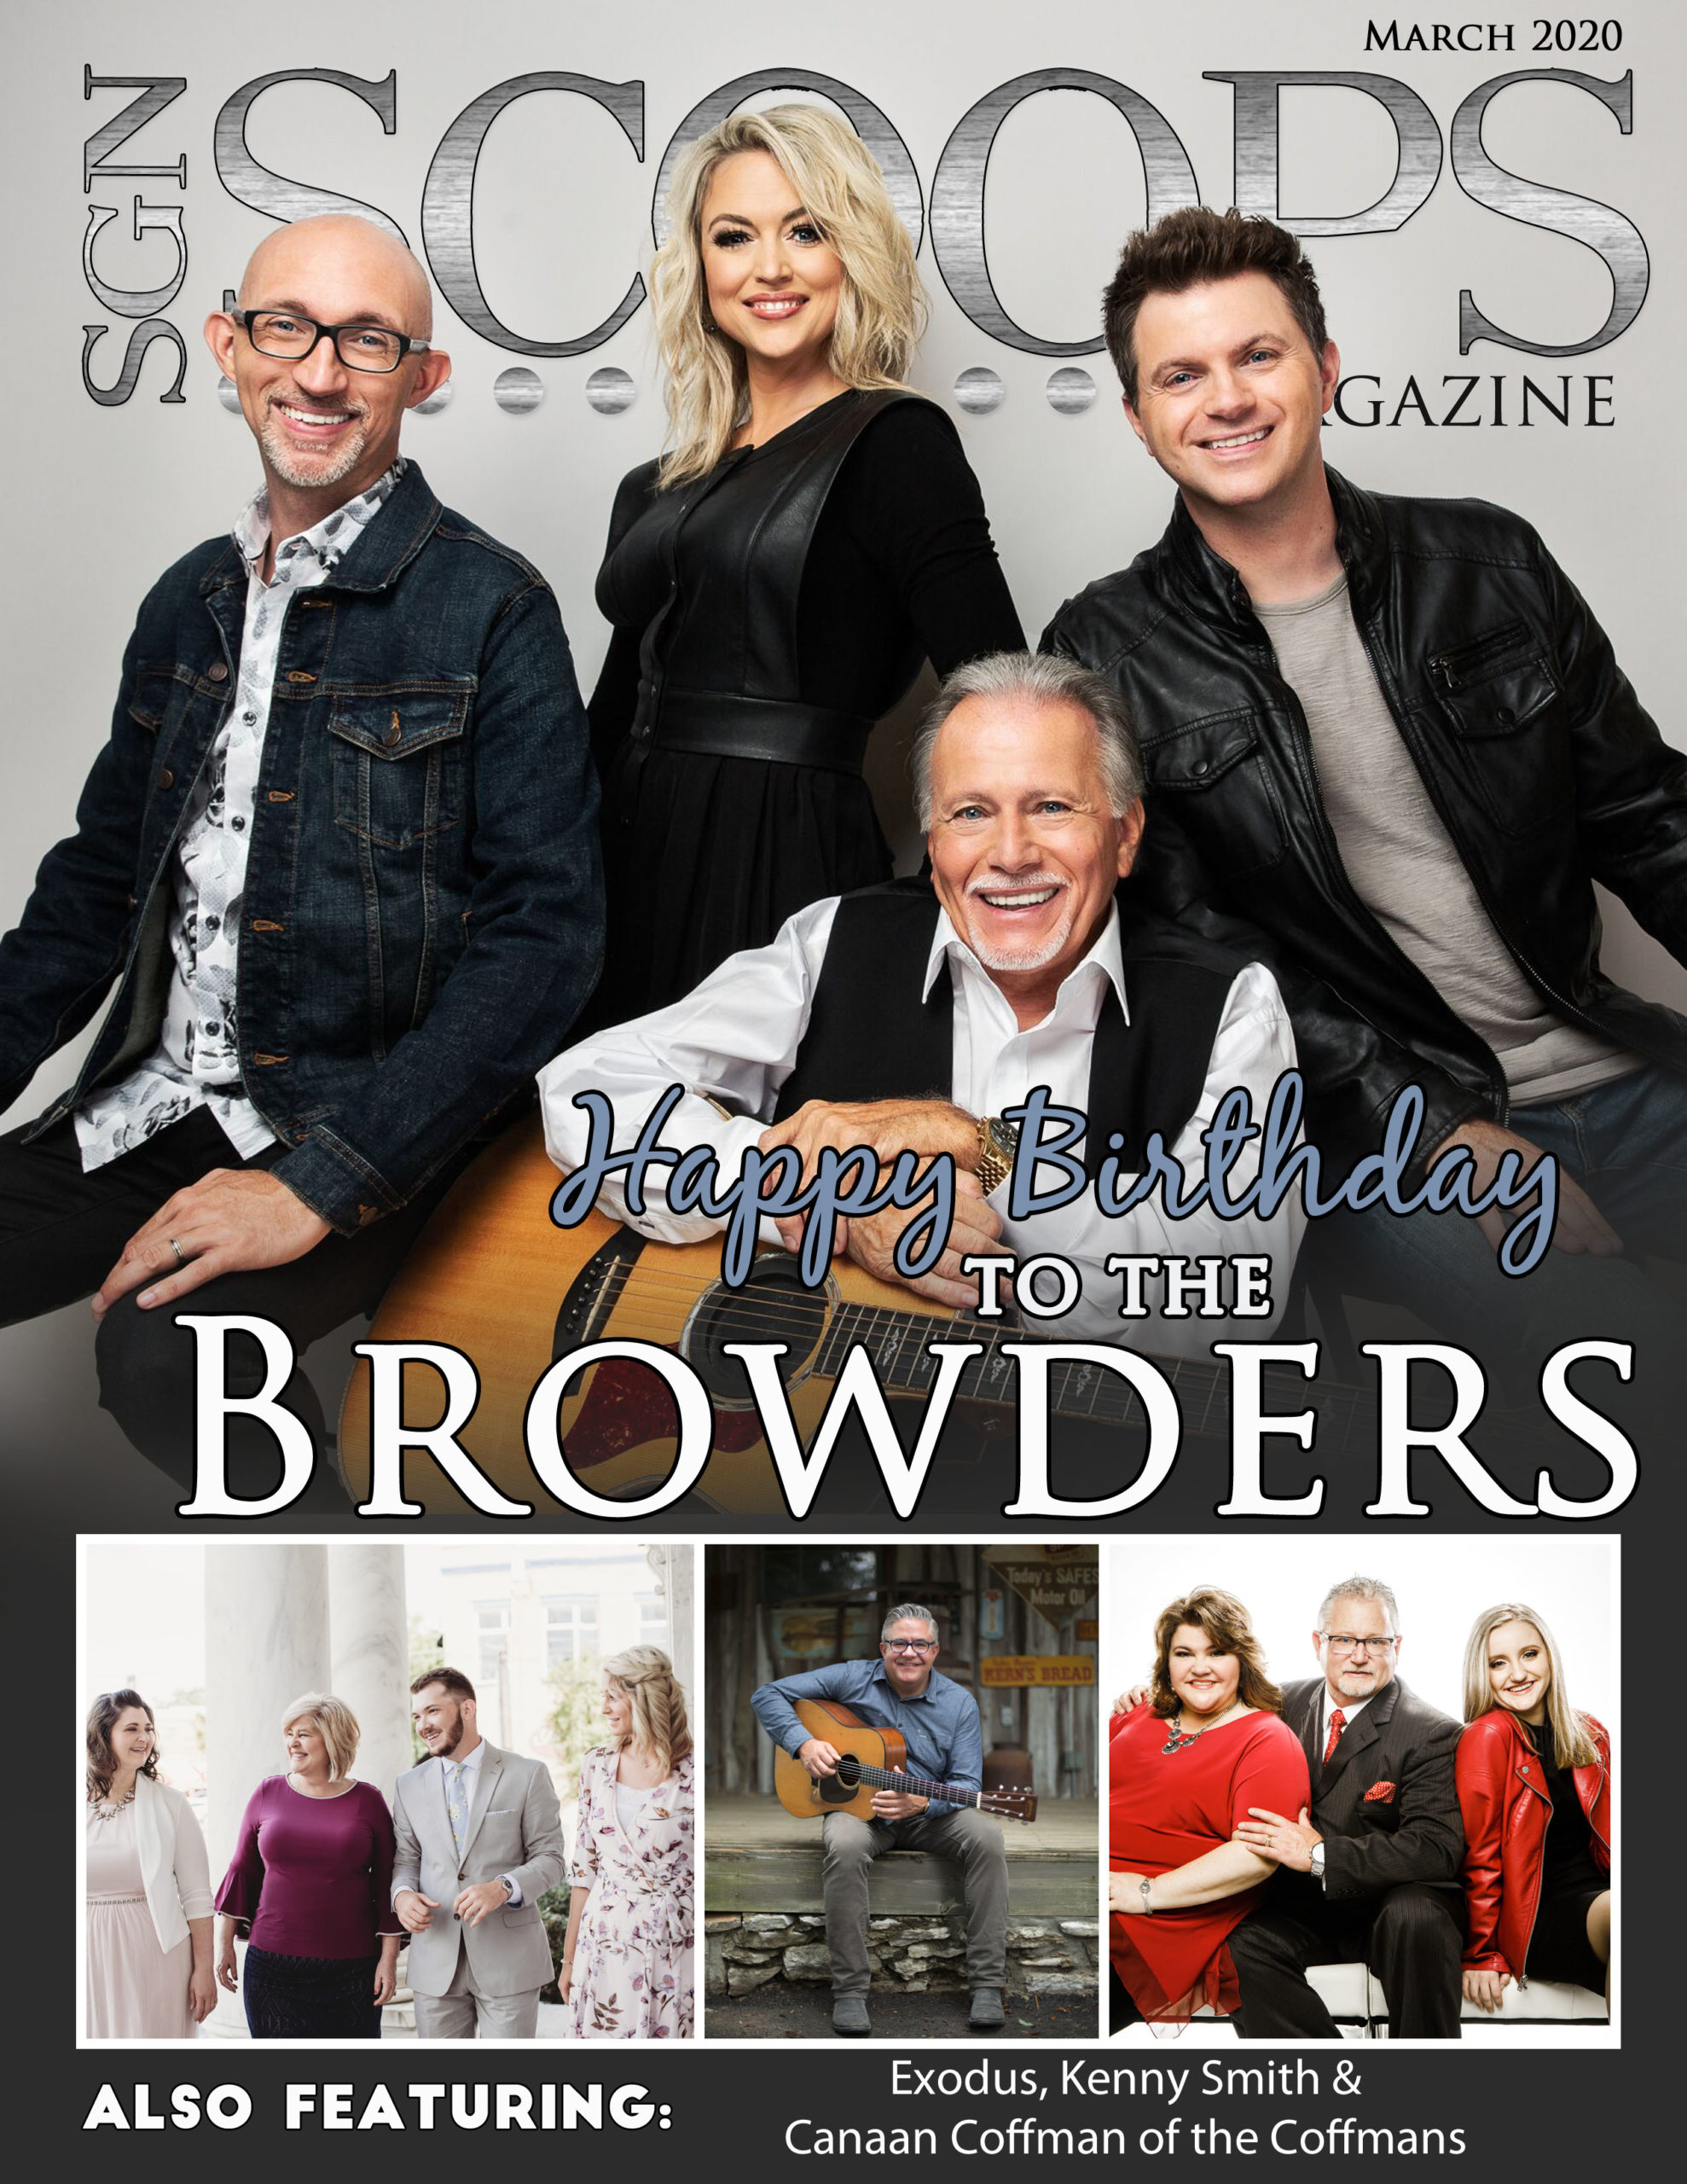 March 202 SGN Scoops Magazine